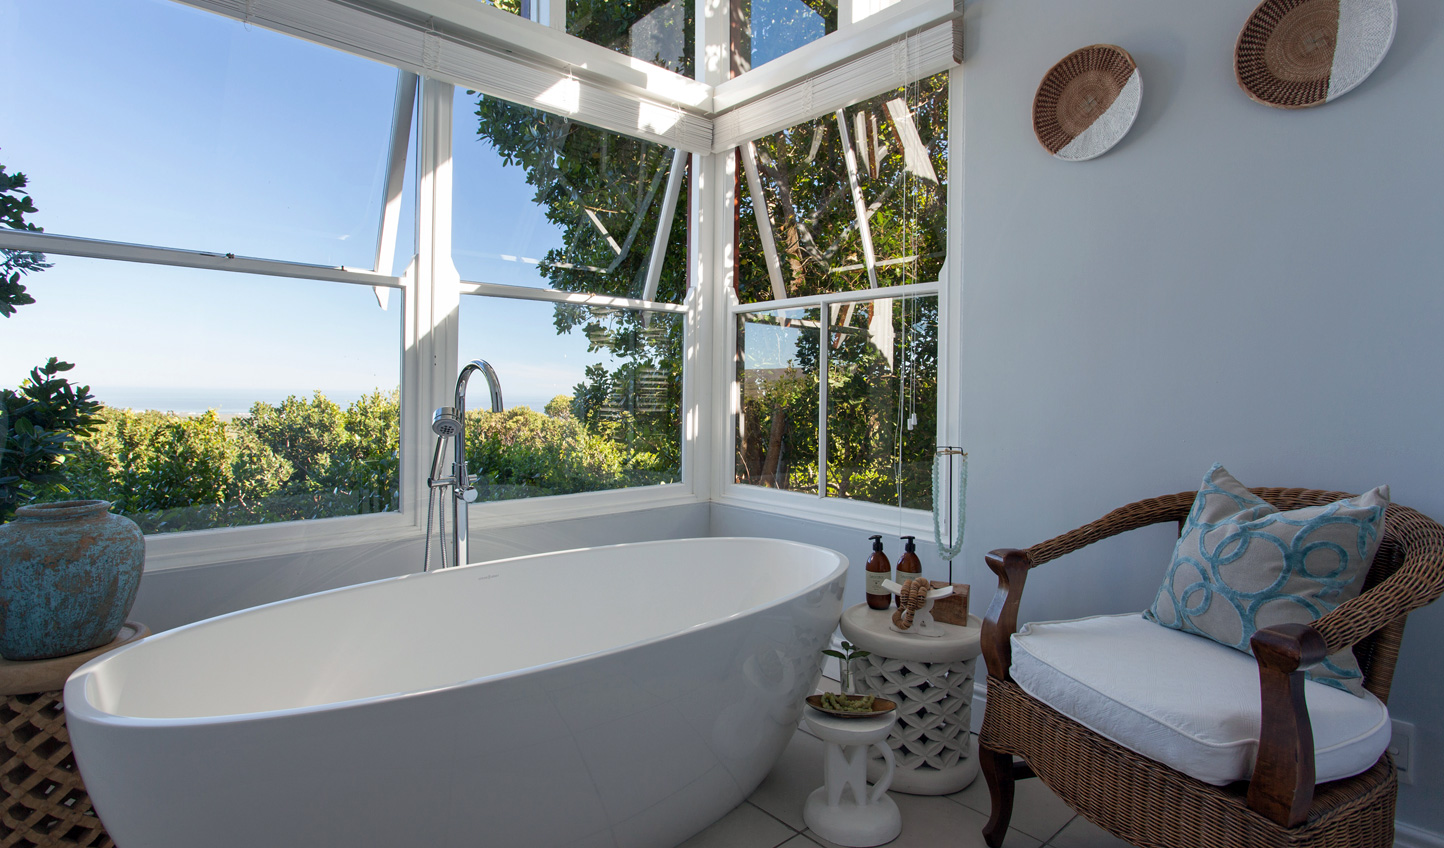 Sink into the tub and admire the views that stretch out before you